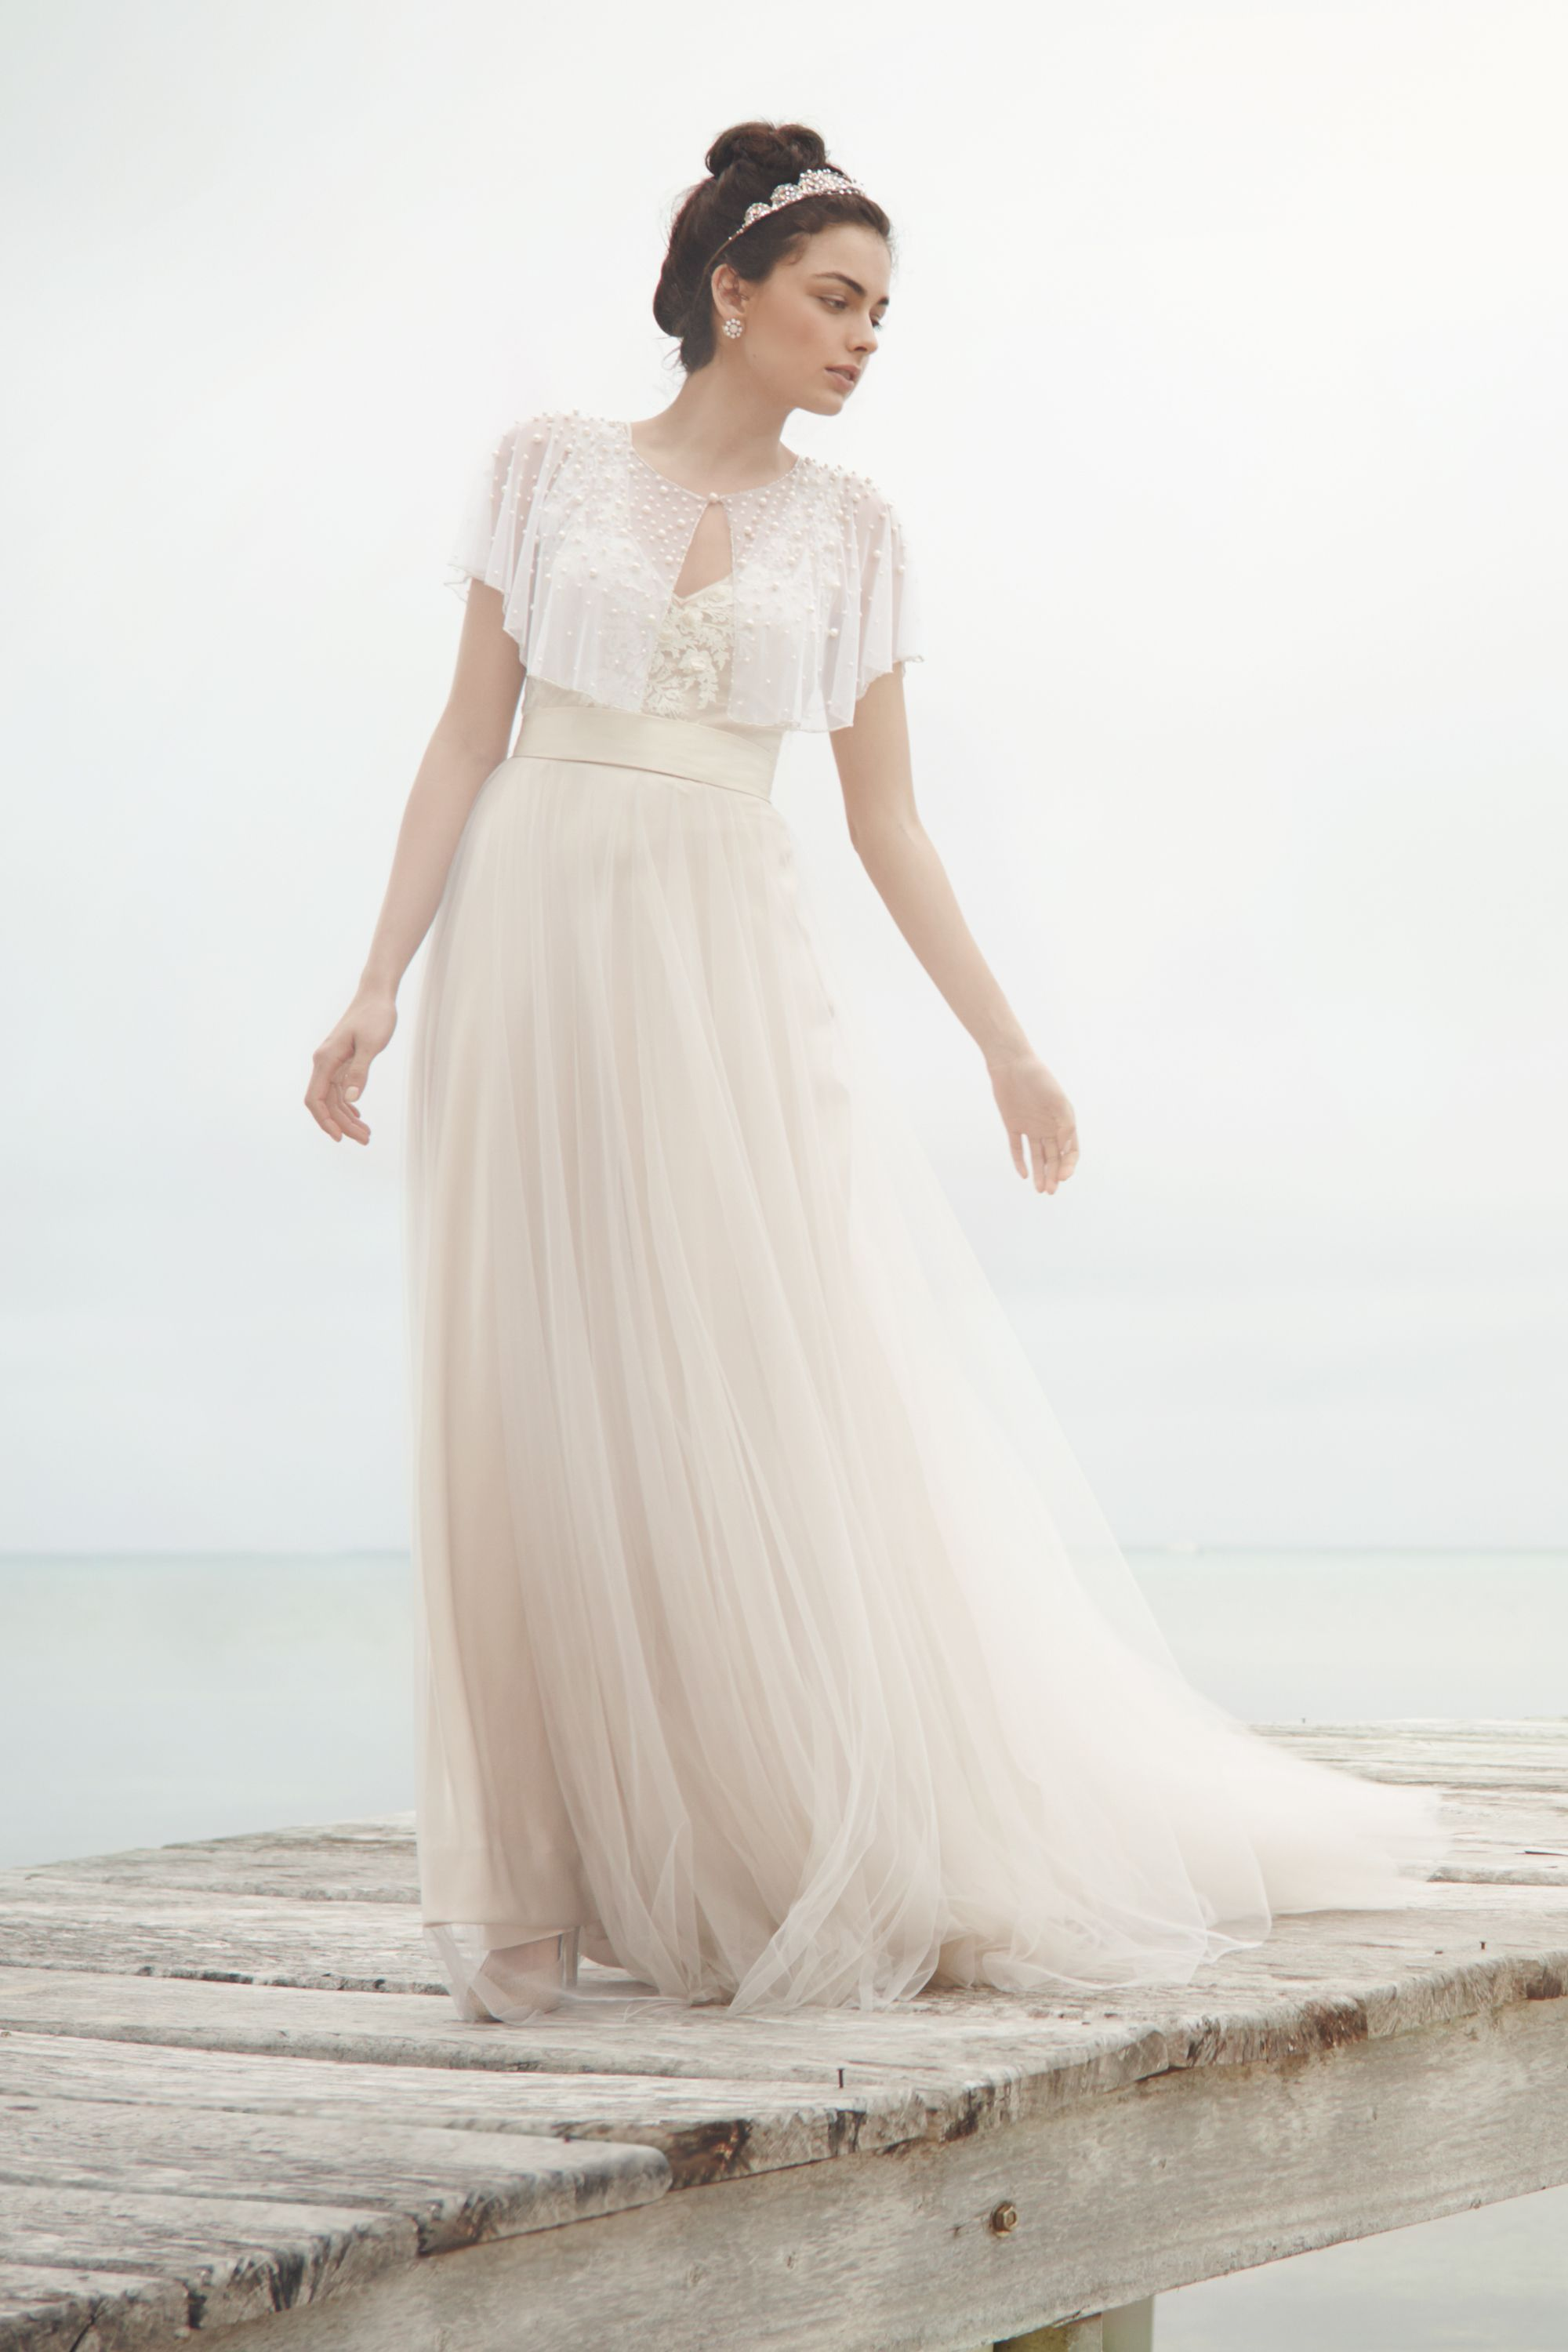 BHLDN Onyx Gown in Sale at BHLDN | Vintage Wedding Gowns | Pinterest ...